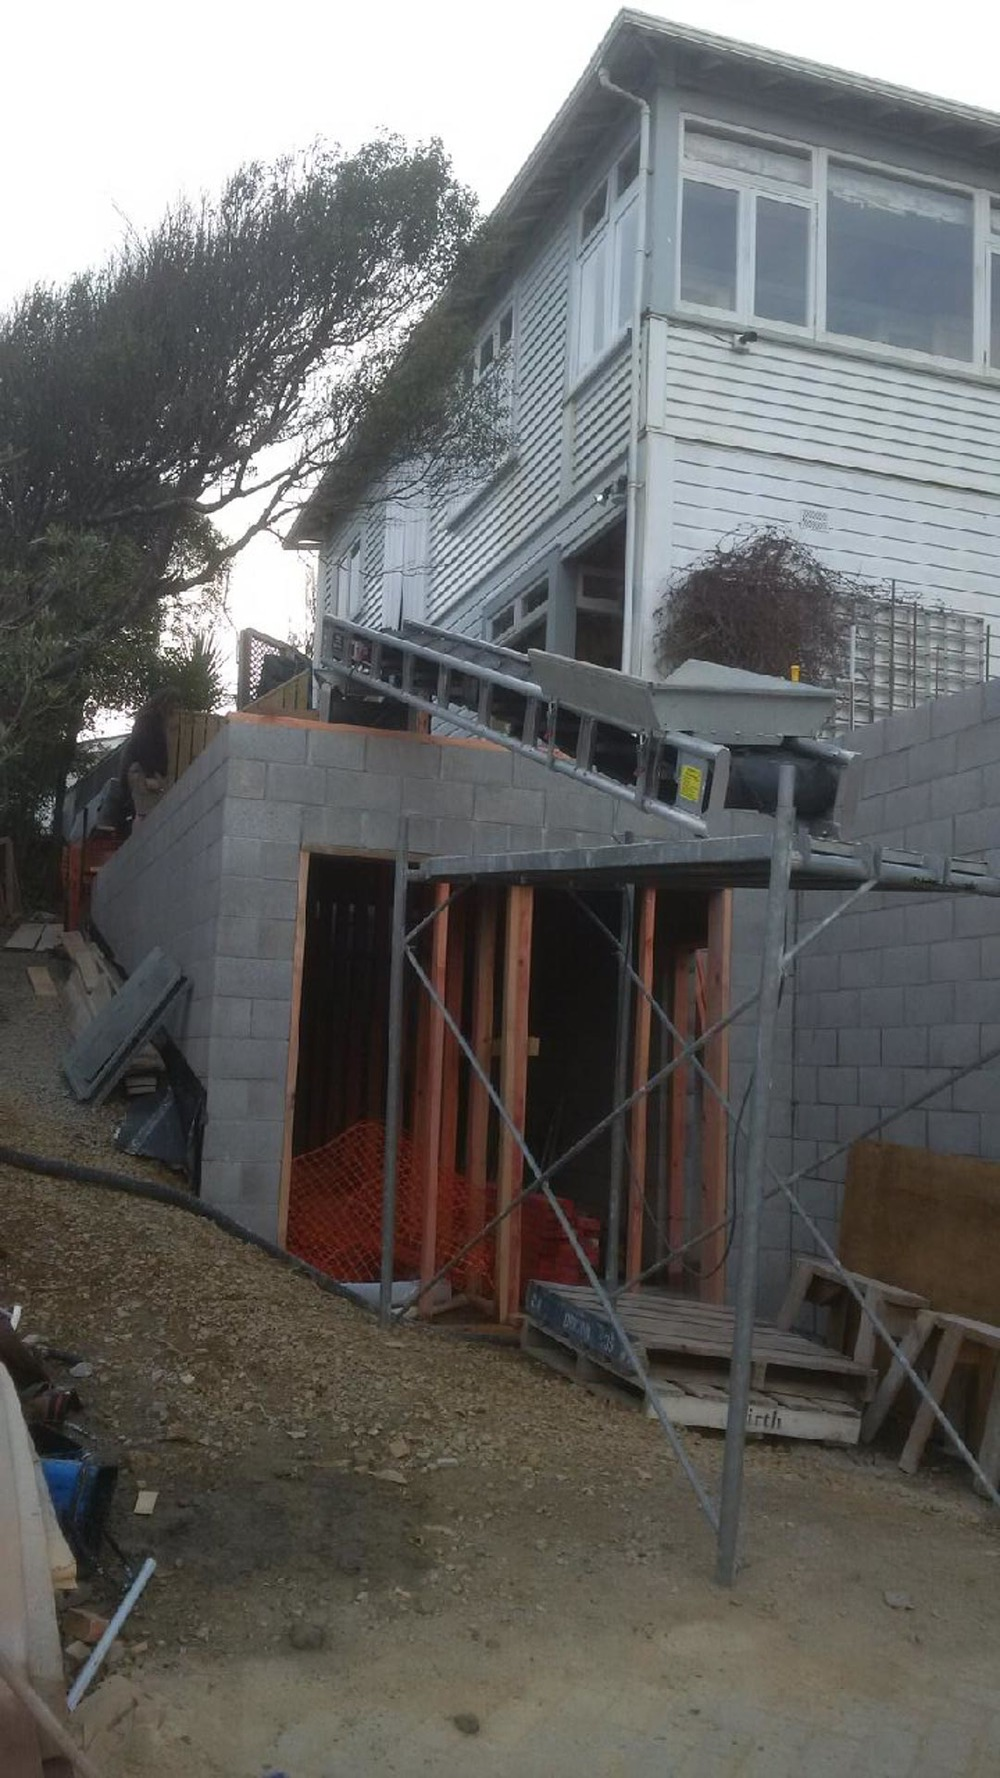 Backfilling under a house